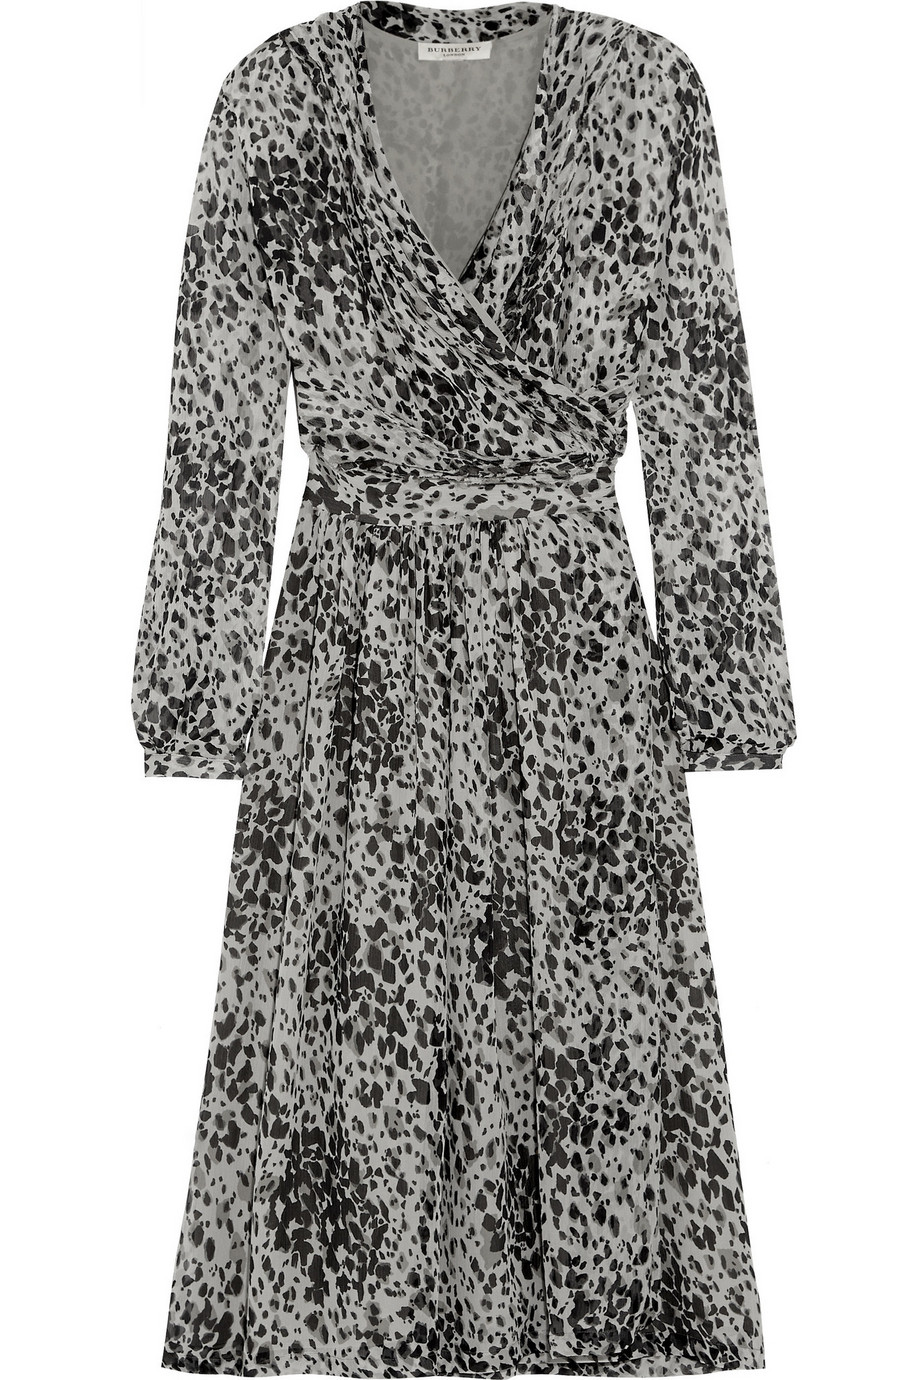 Burberry London Leopard-Print Silk-Chiffon Wrap Dress, Leopard Print, Women's - Leopard, Size: 10